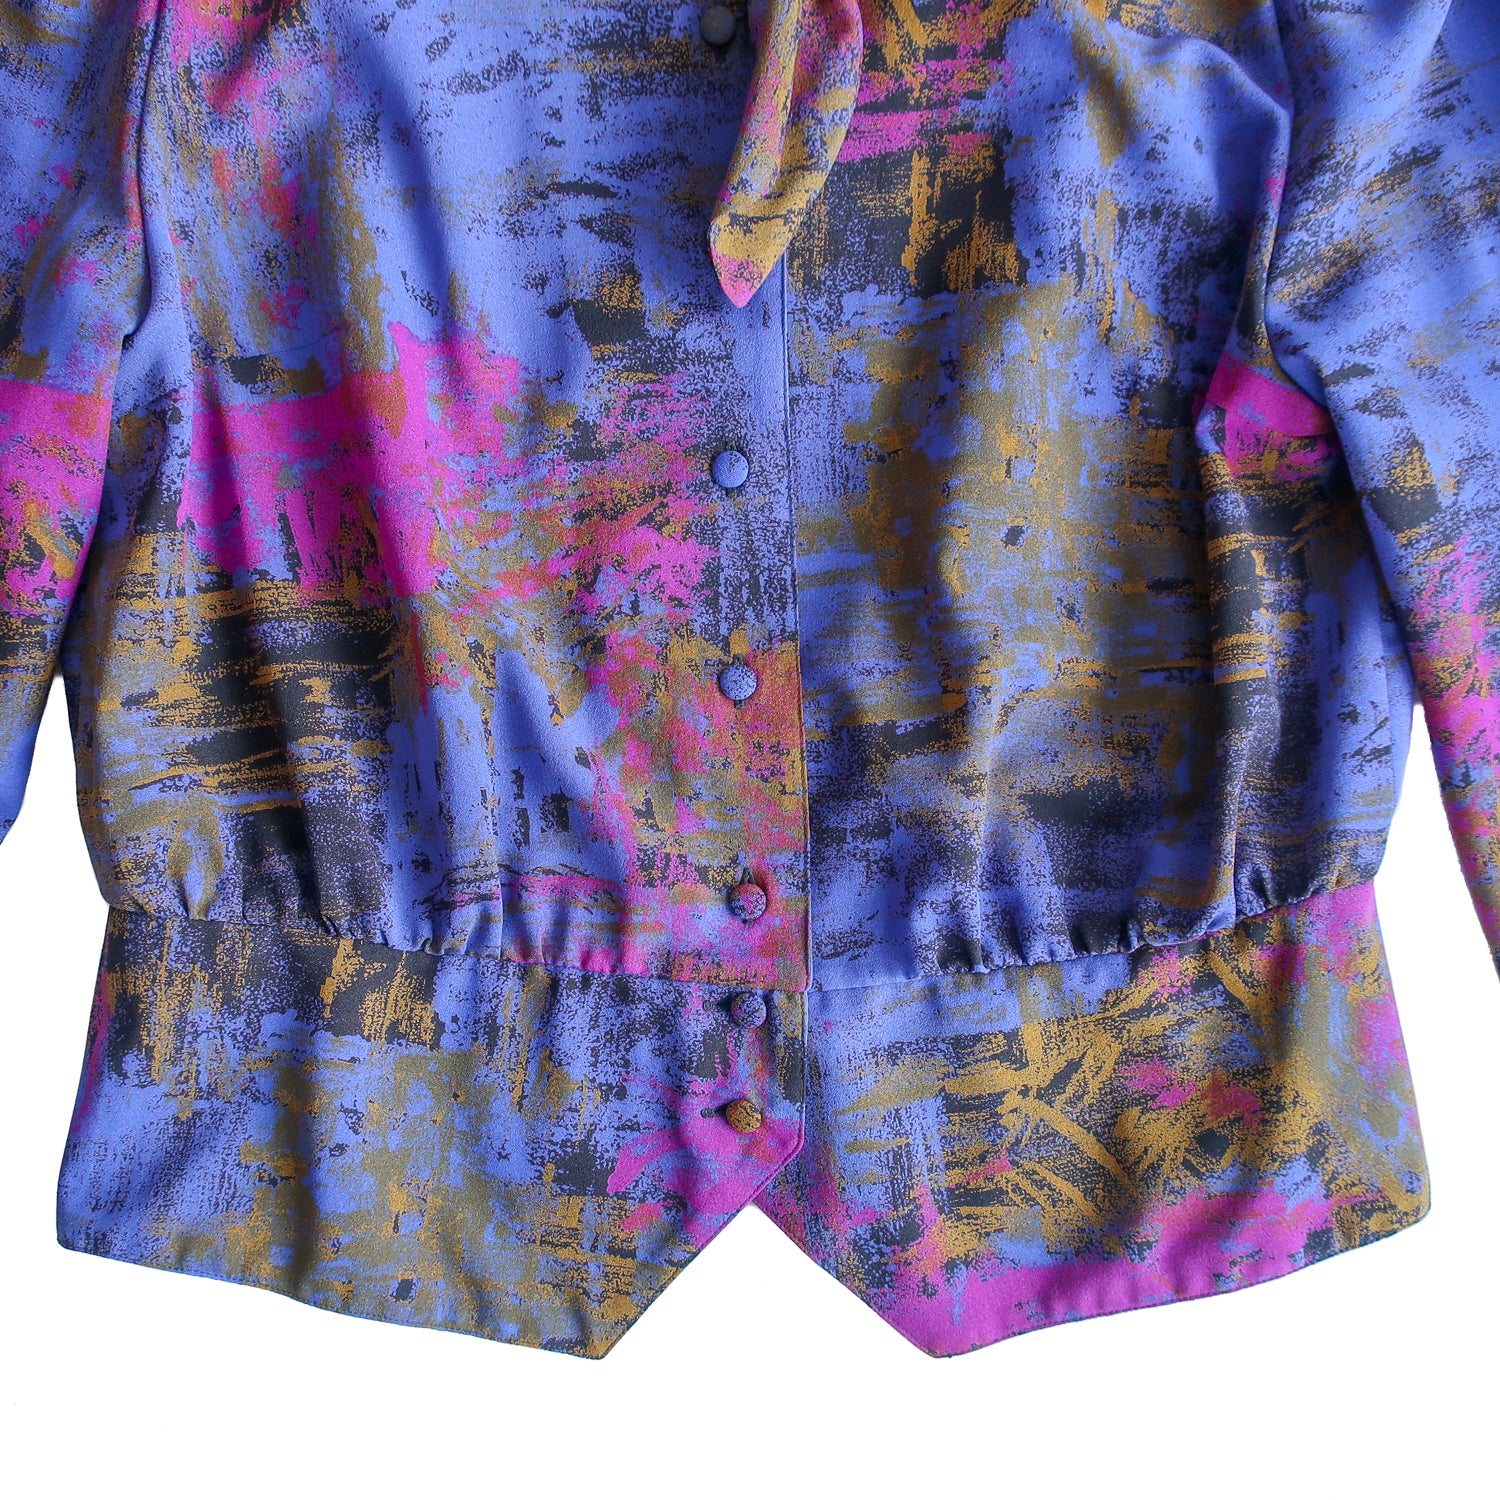 Second Room Shop Vintage. Shop vintage, shop sustainable. Vintage blouse with tie at the neck, can be worn on its own as a top, or as a light jacket. The tie is fully attached to one side, so it could still be tied with the blouse unbuttoned. Has a great abstract pattern in purple, blue, black and gold, and fully buttons down the front. Has two buttons on each cuff, a standing collar with pleated detail, and no shoulder pads. Slight gathered detail on the shoulder seam. A truly unique and beautiful piece!